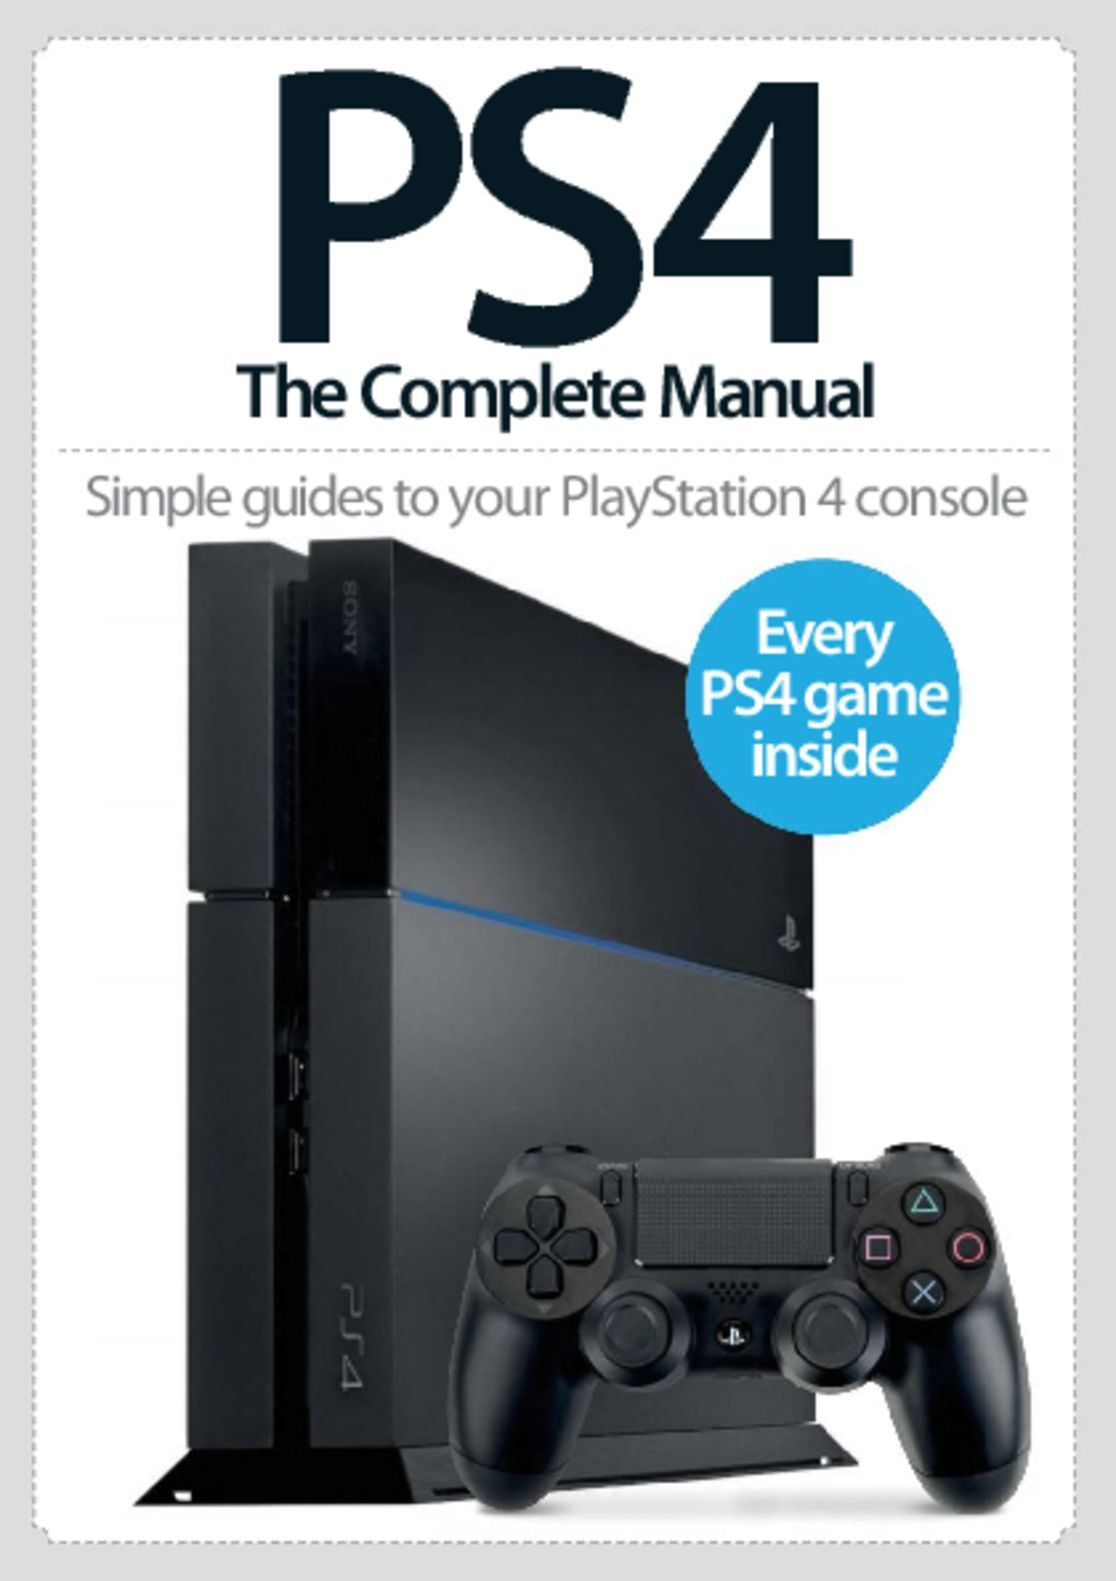 PS4 The Complete Manual Digital